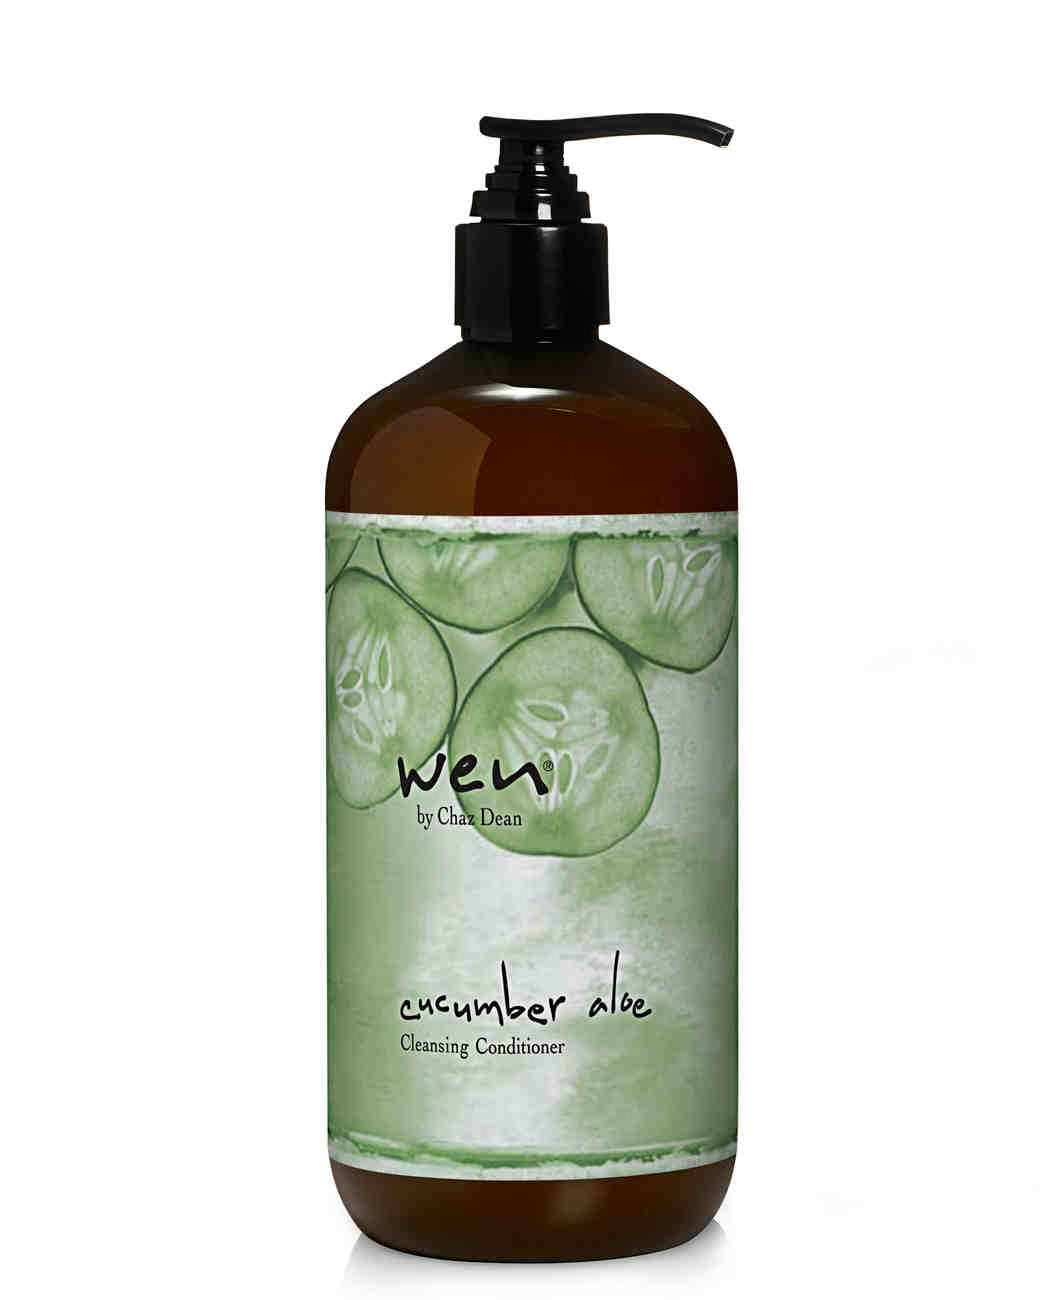 wen-cucumber-aloe-cleansing-conditioner-0314.jpg